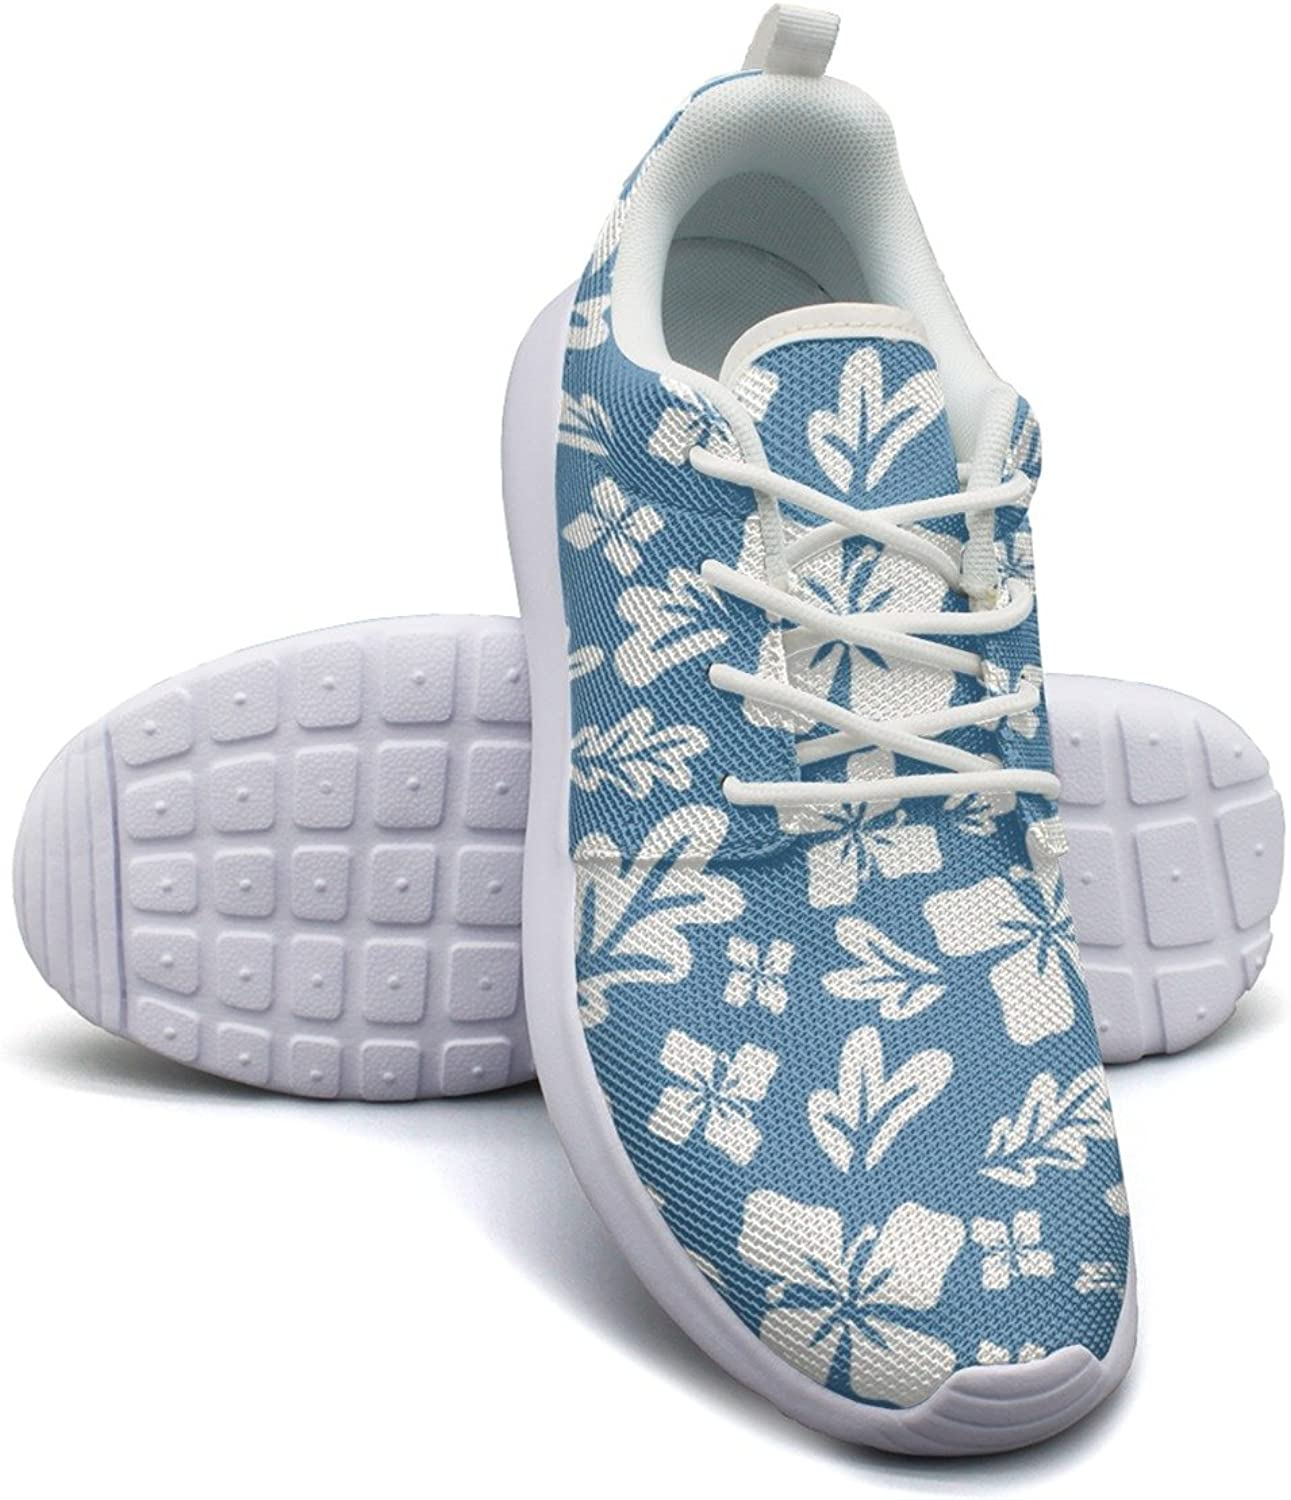 Tropical Summer Flowers Women's Fashion Running shoes Comfortable Mesh Lightweight Athletic Sneakers